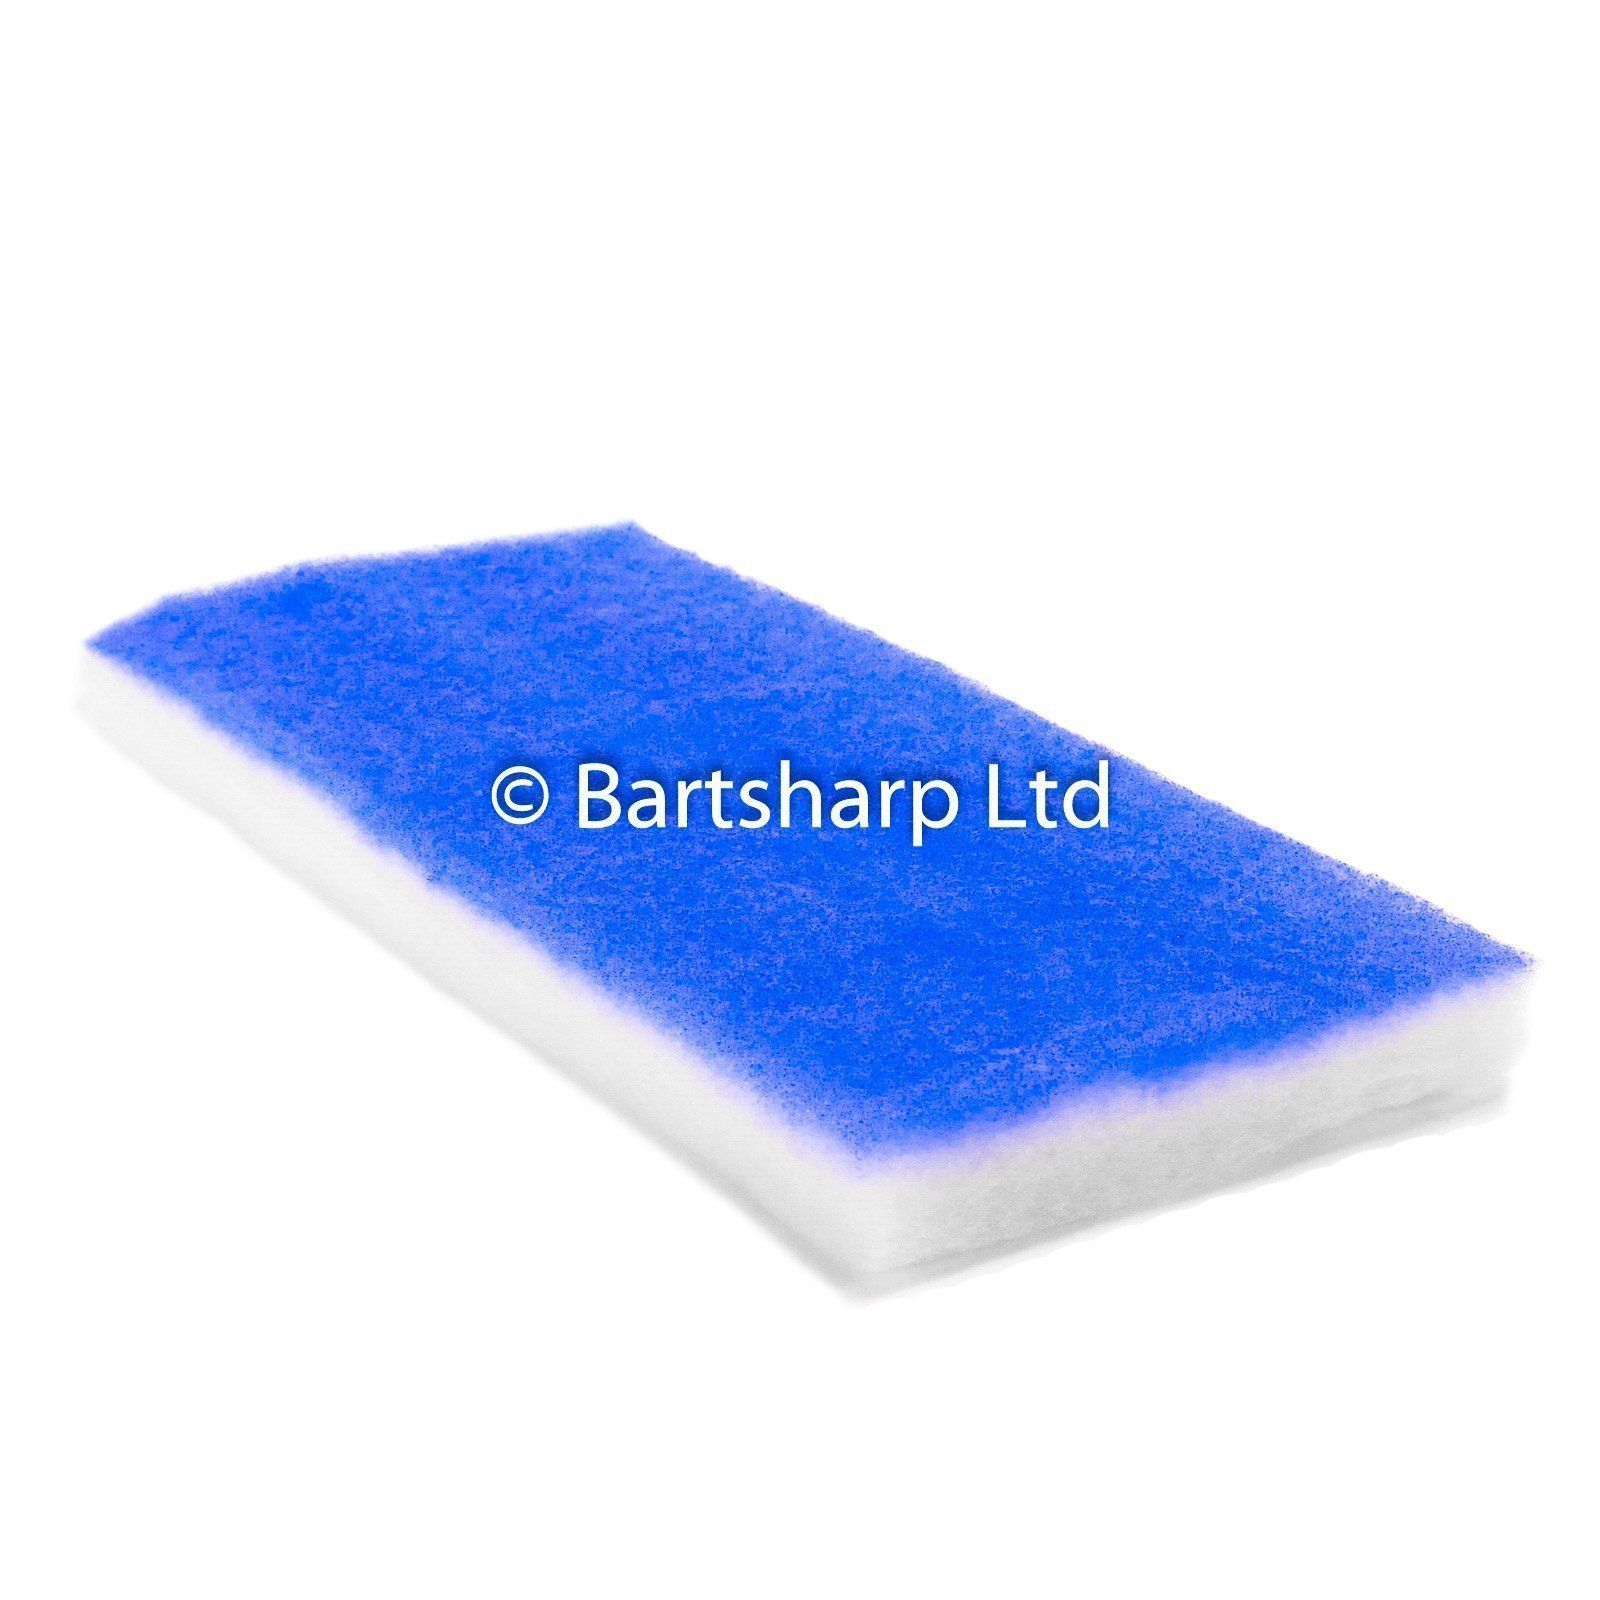 BARTSHARP Airbrush Spray Booth Replacement Filter